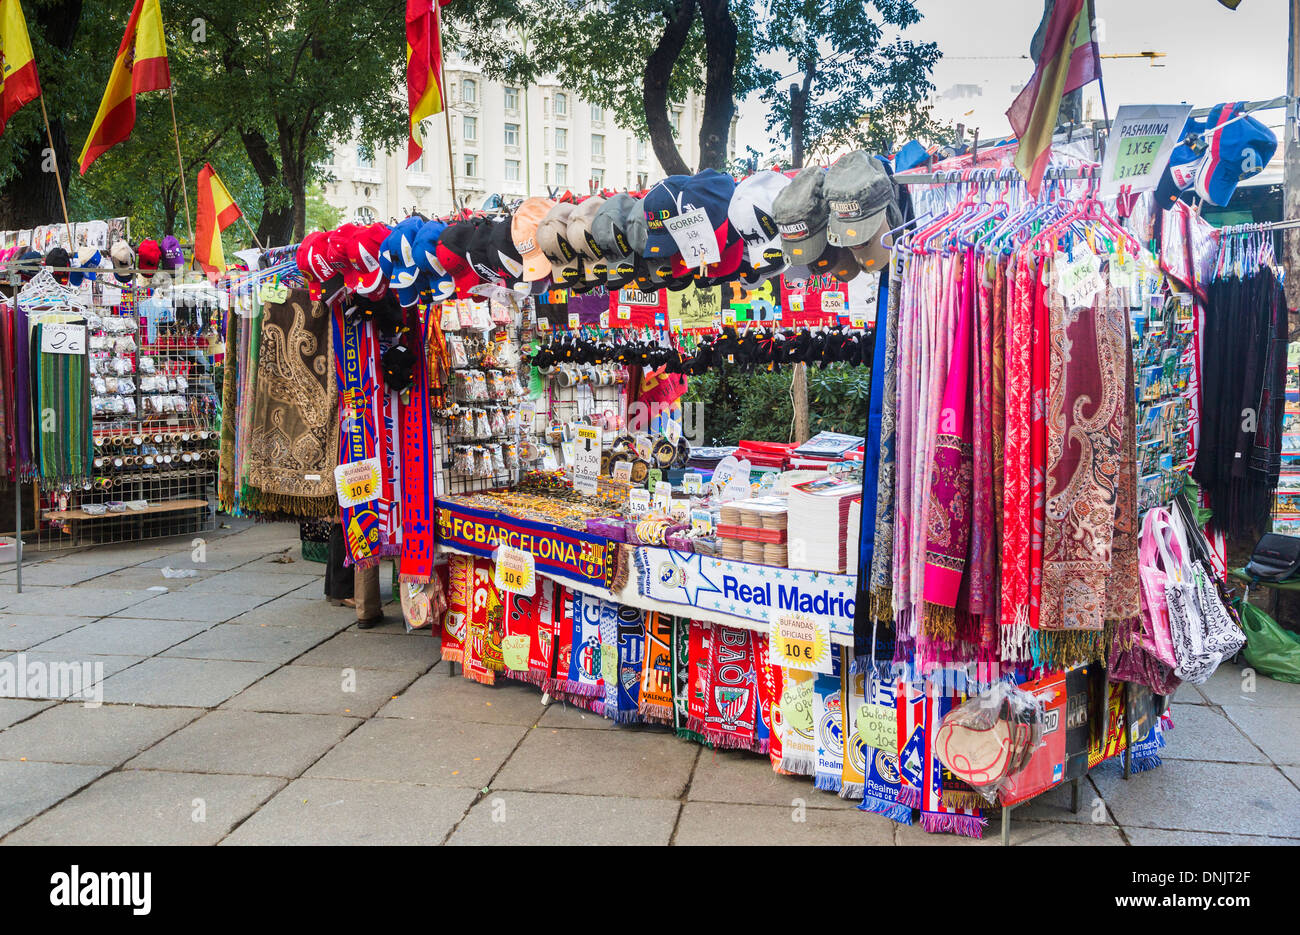 souvenir stall in madrid spain selling pashminas baseball caps and stock photo royalty free. Black Bedroom Furniture Sets. Home Design Ideas